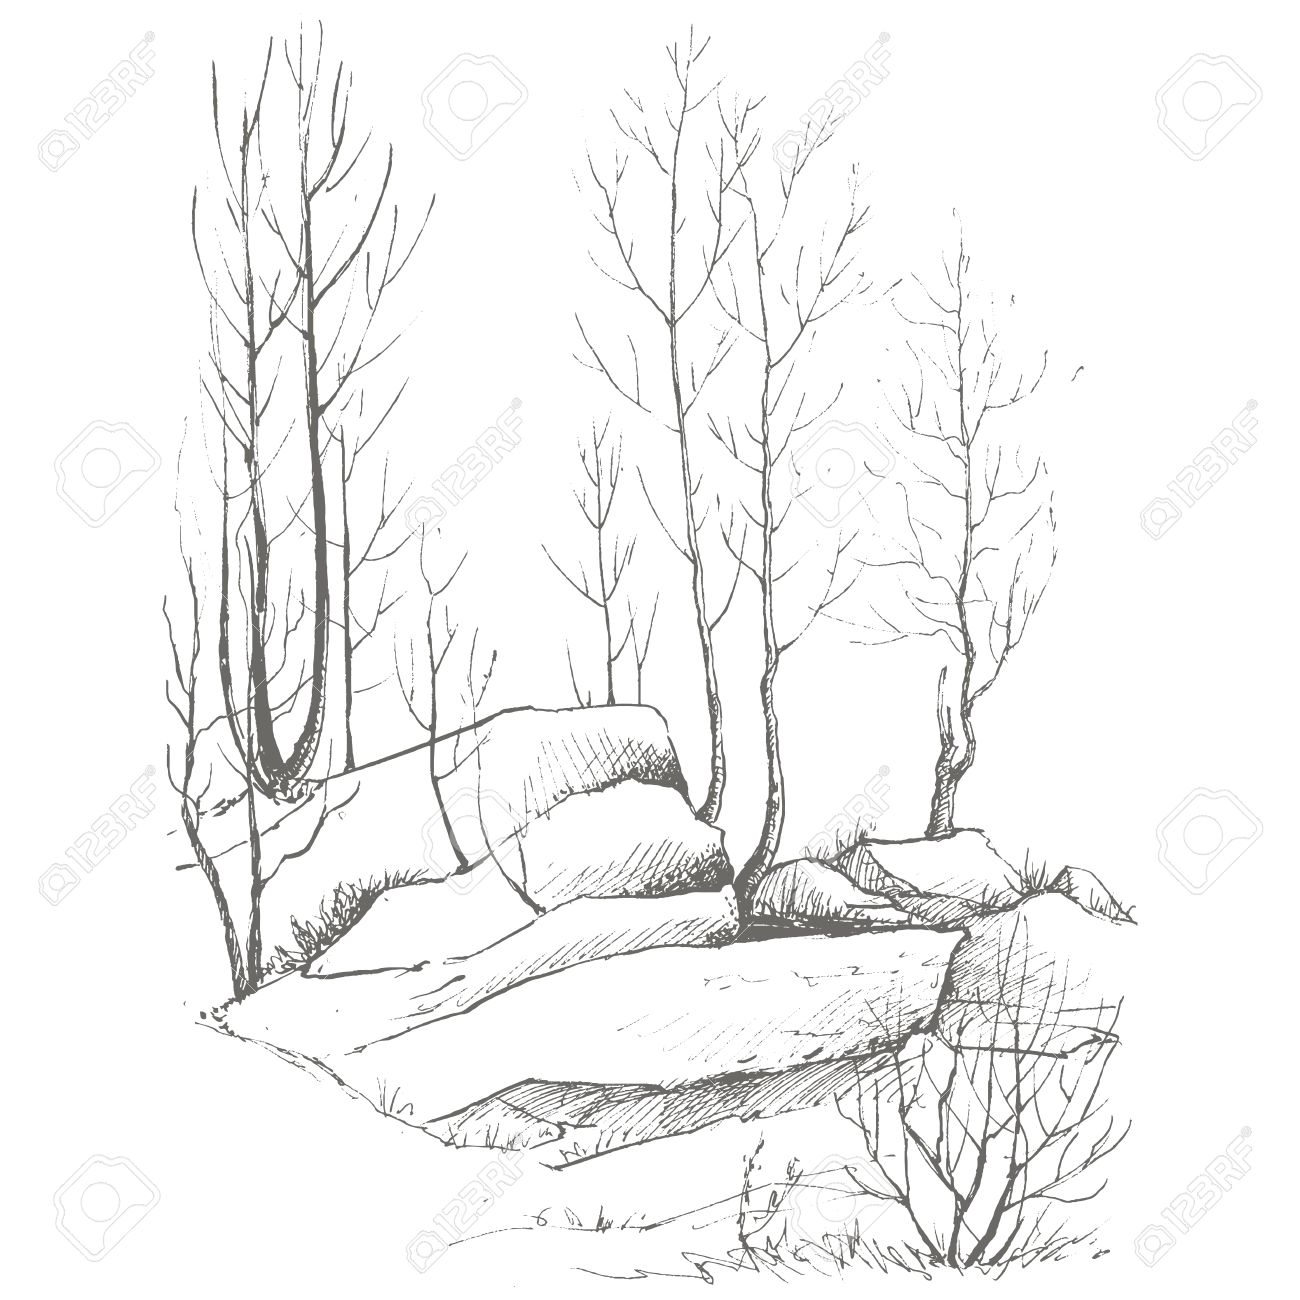 1300x1300 Young Birch Trees, Bushes And Rocks Drawing By Ink, Sketch Of